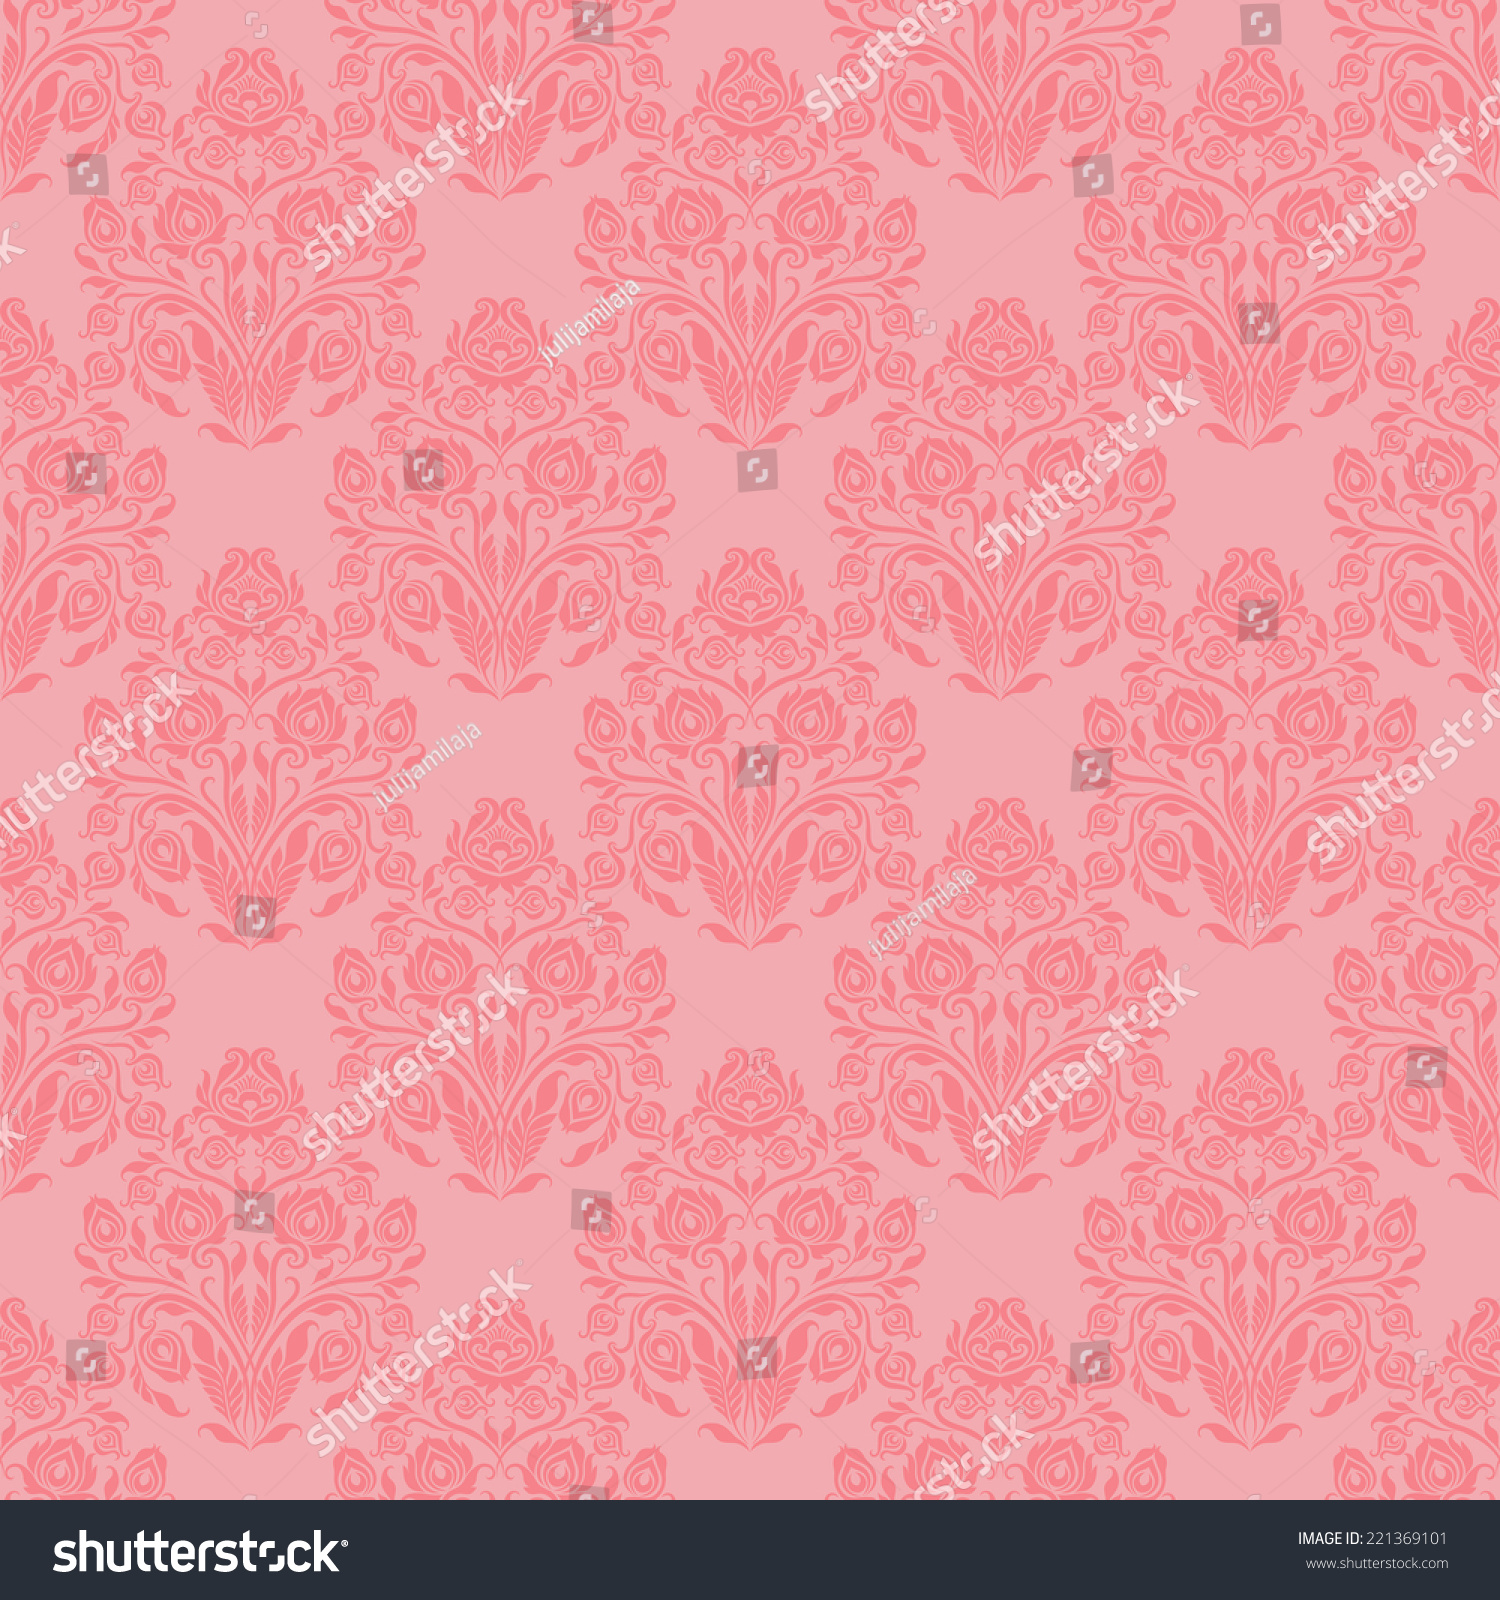 Damask Seamless Floral Pattern Royal Wallpaper Ornaments On A Pink Background Vector